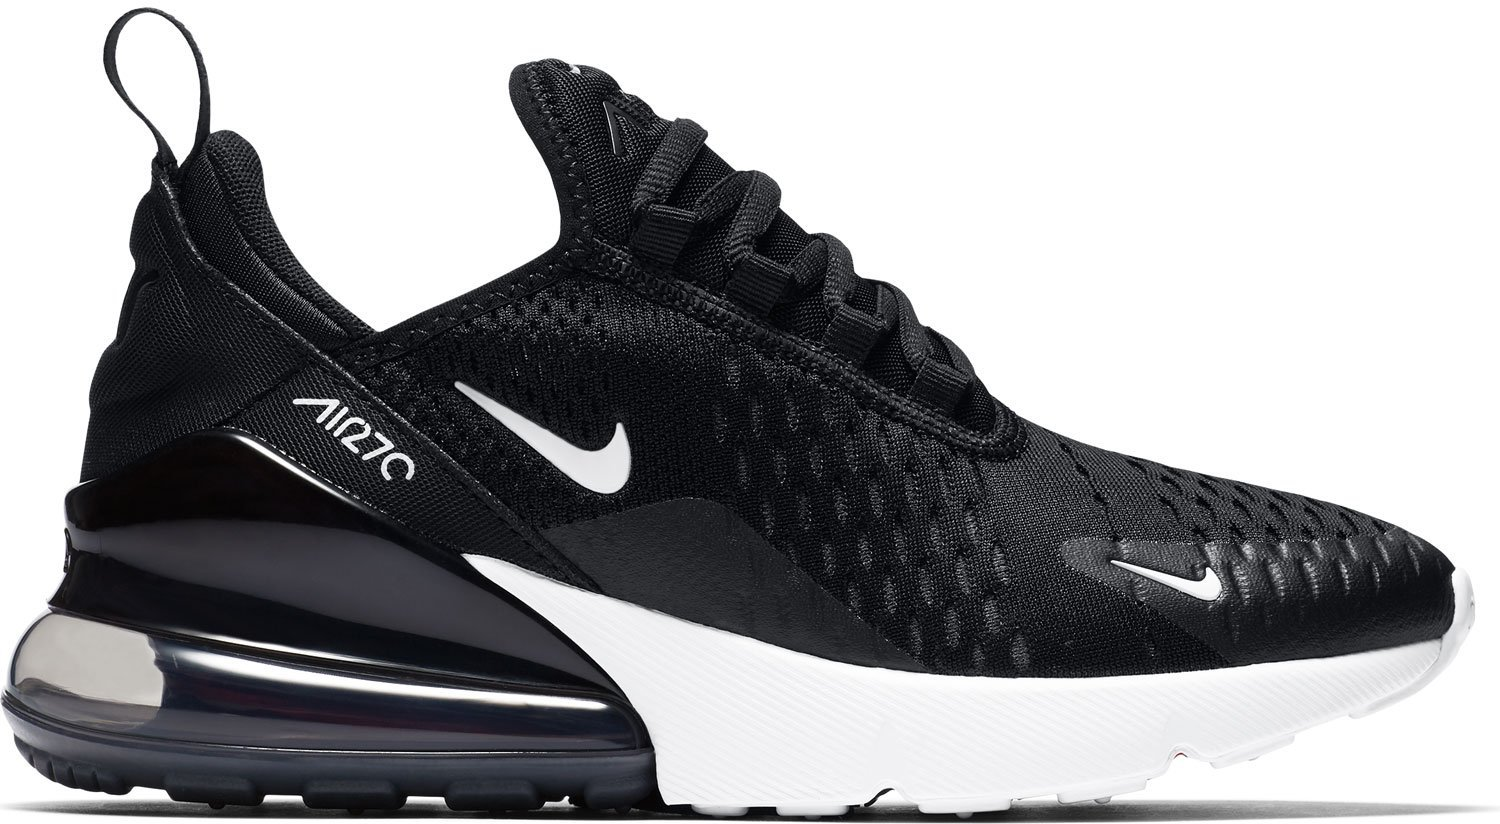 Nike Air Max 270 Jr. black/white/anthracite